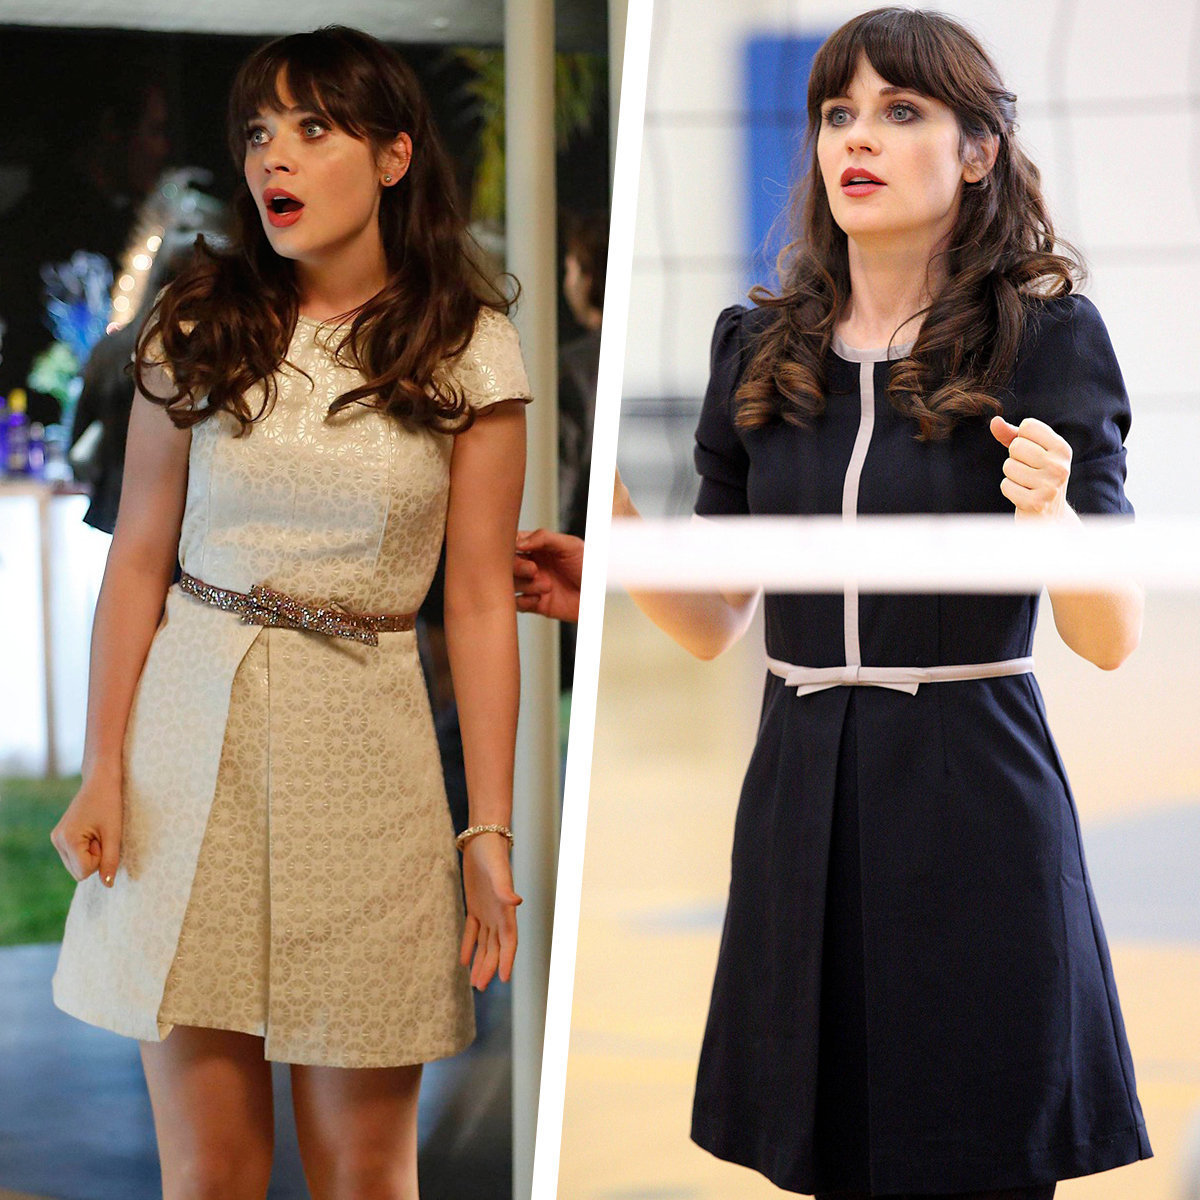 Zooey Deschanel, New Girl fashion